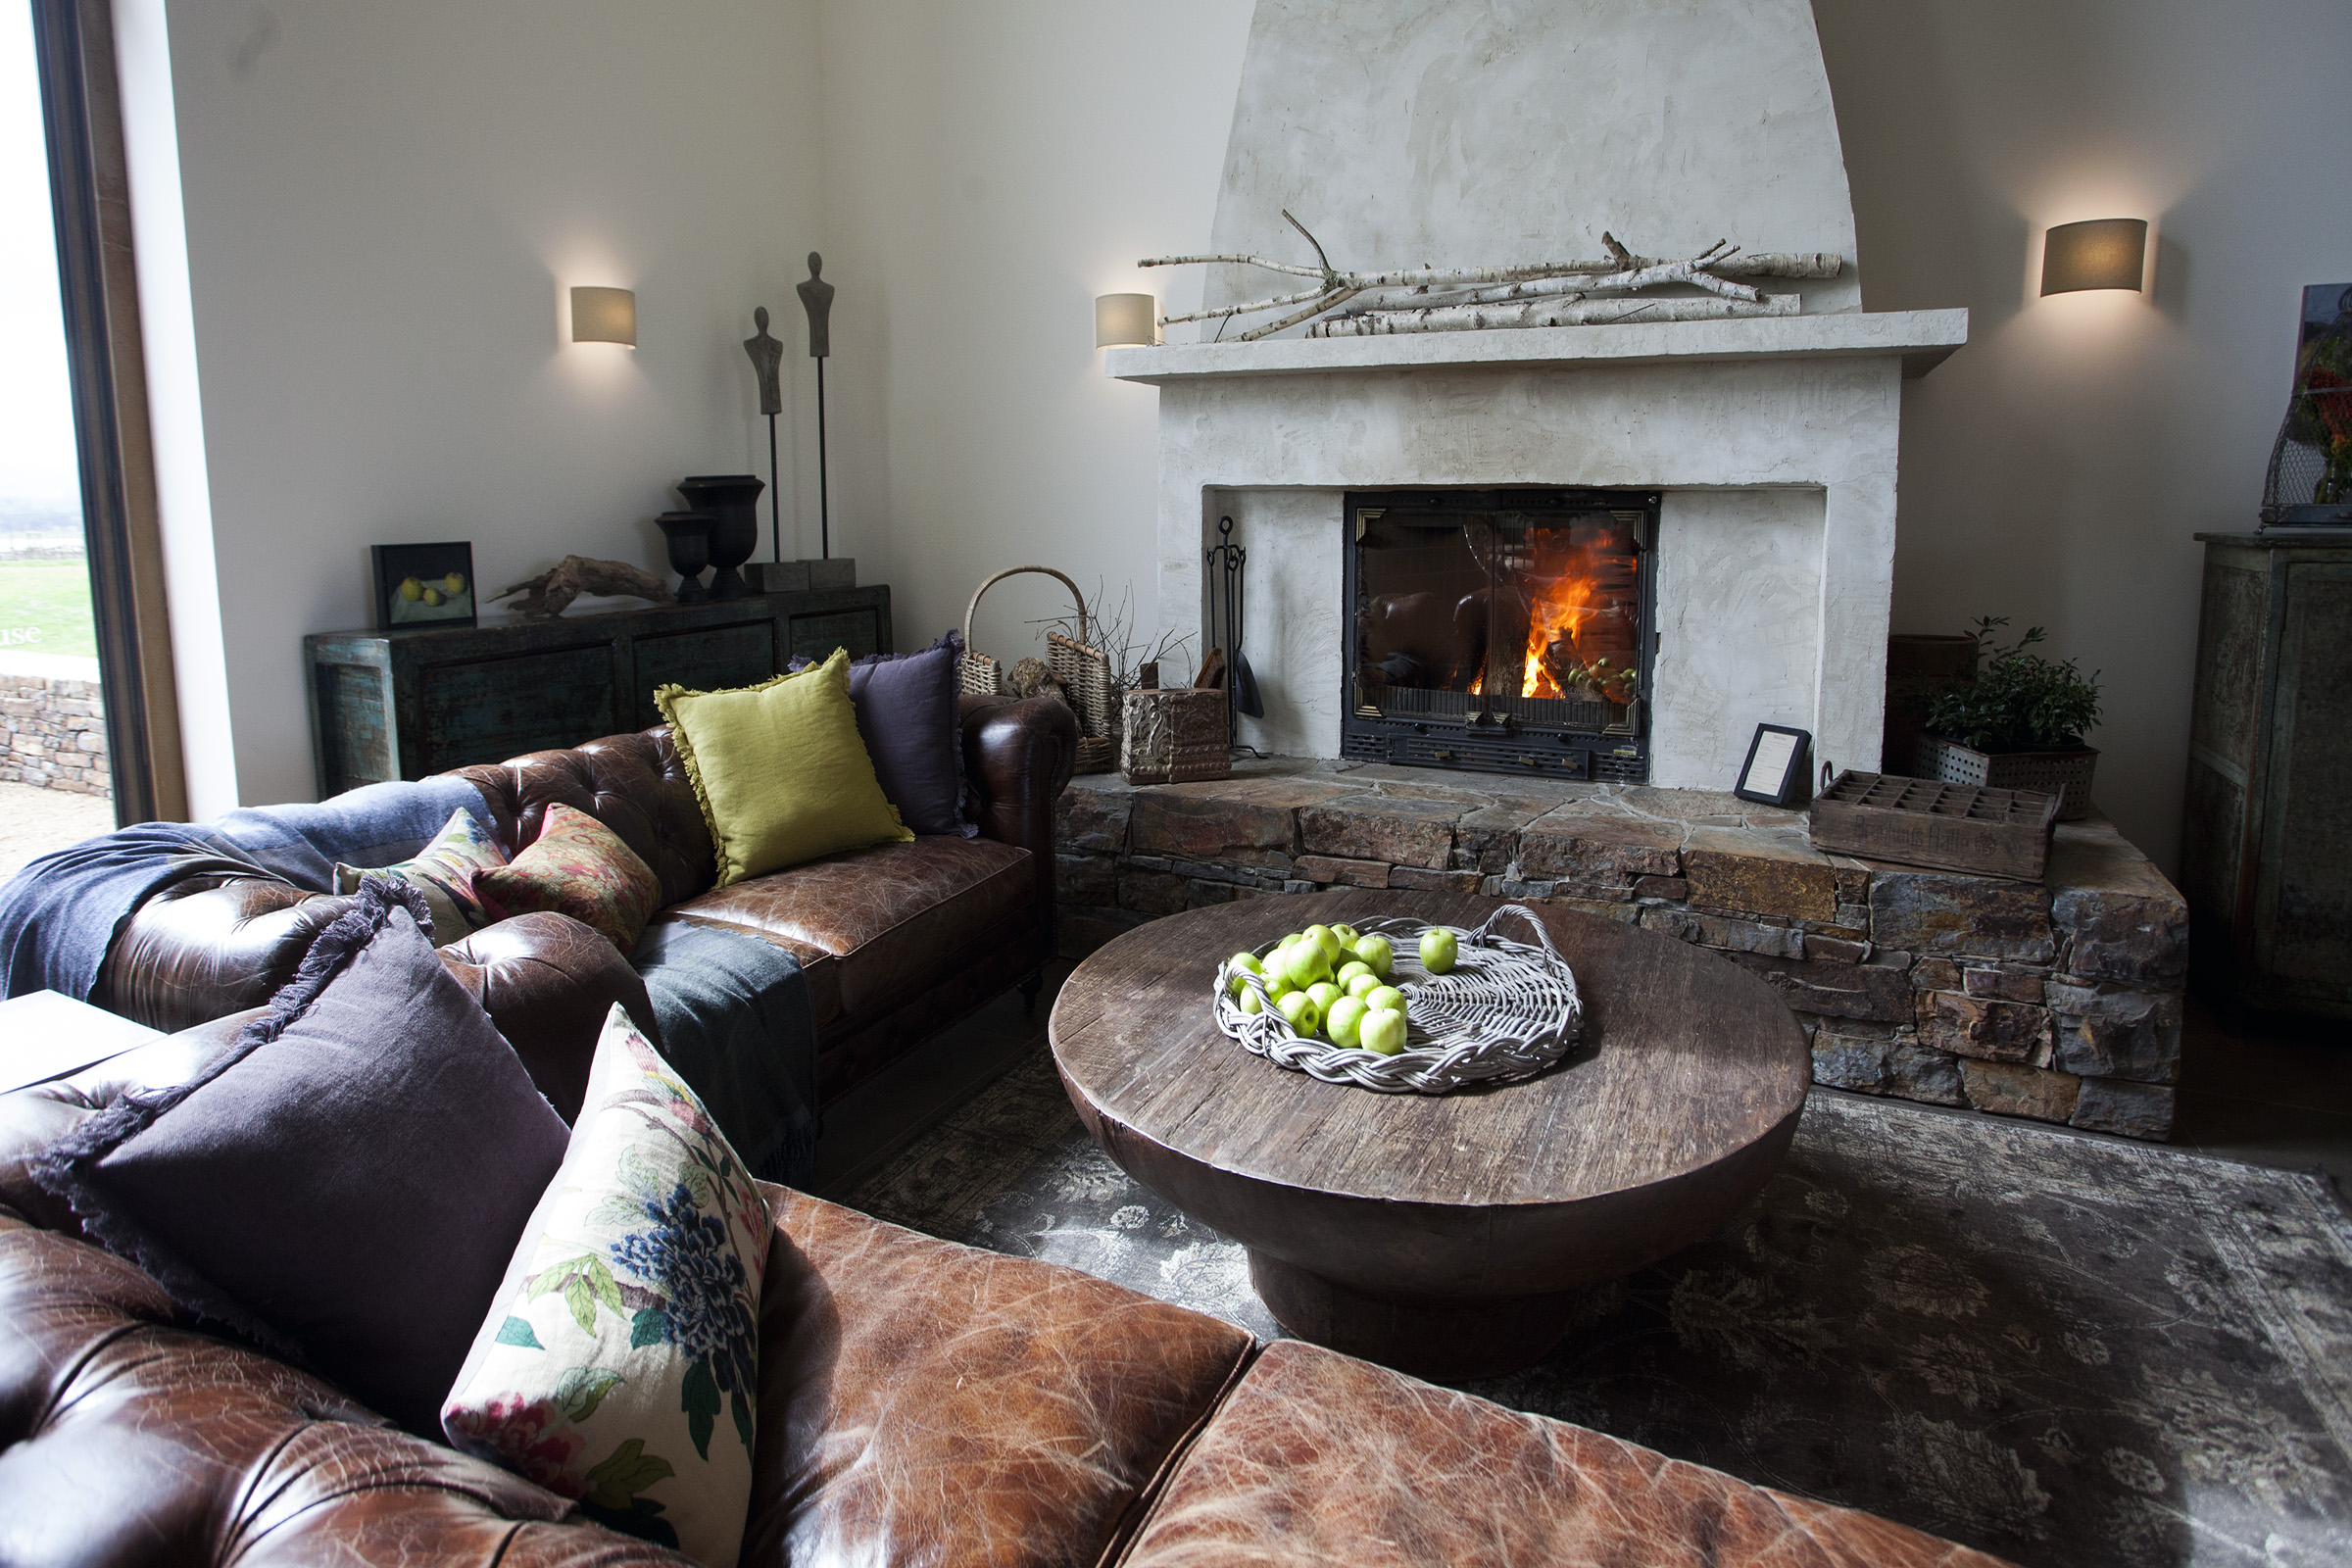 Cheminees Philippe: the best of both heating worlds - Fireplace in a farmhouse setting